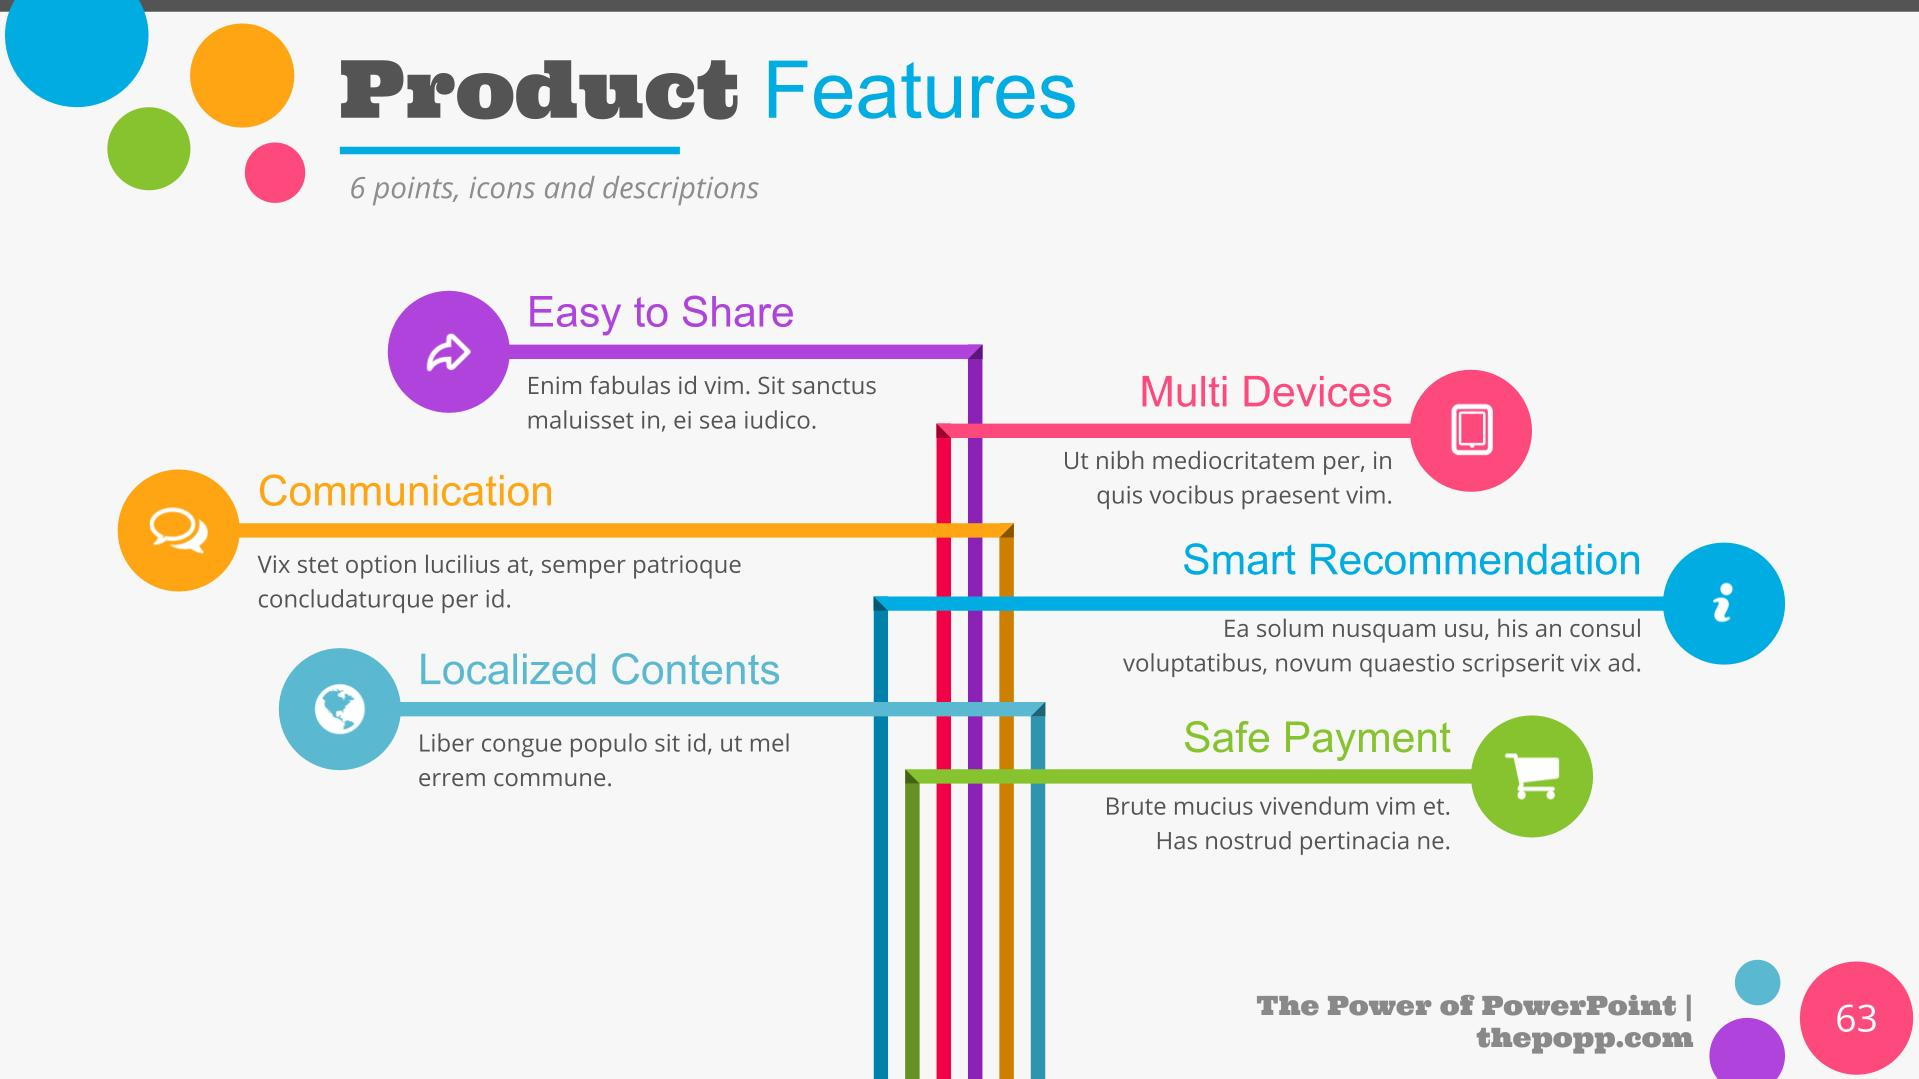 The slide is designed to show the benefits of the products.